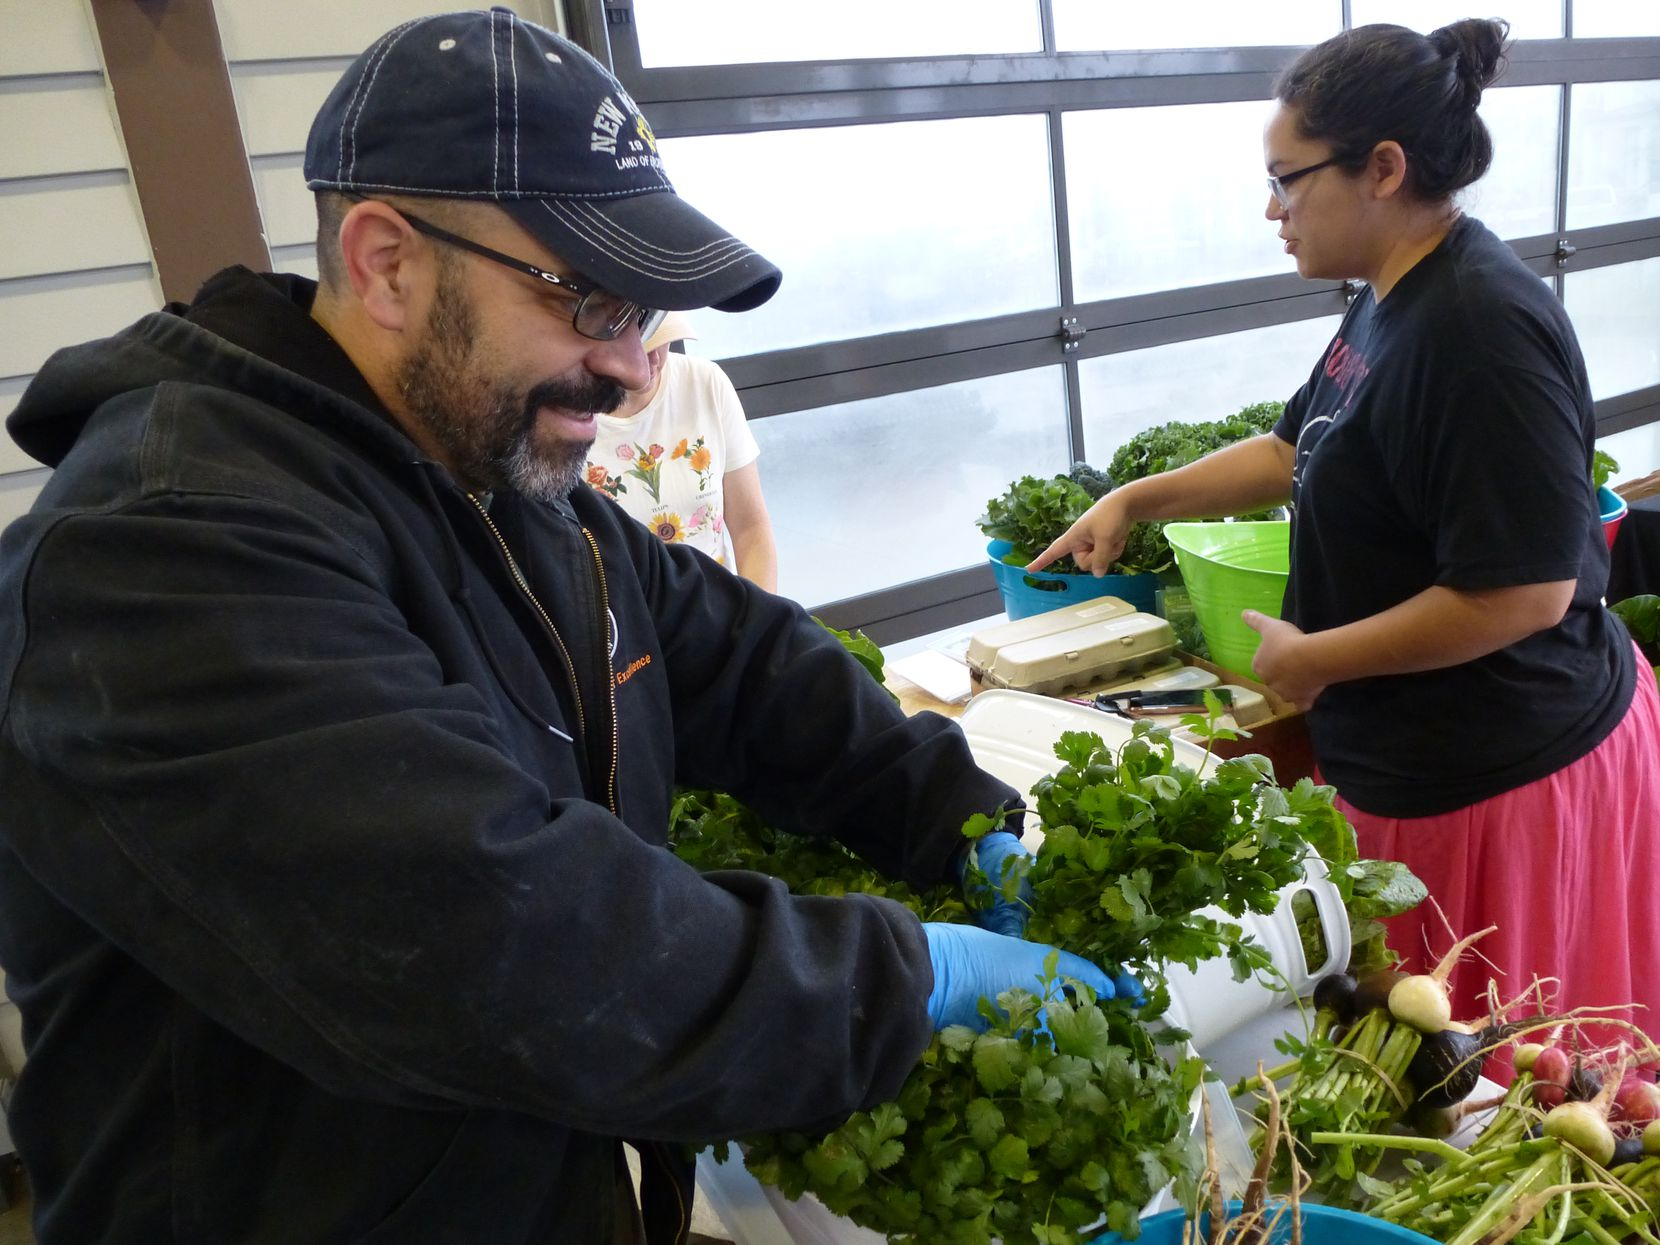 """At Coppell Farmers Market, farmer Russell Gonzales sorts through cilantro from his Delanco Farm in Paradise. He wears blue safety gloves handed out by the market manager """"just to give people peace of mind."""""""